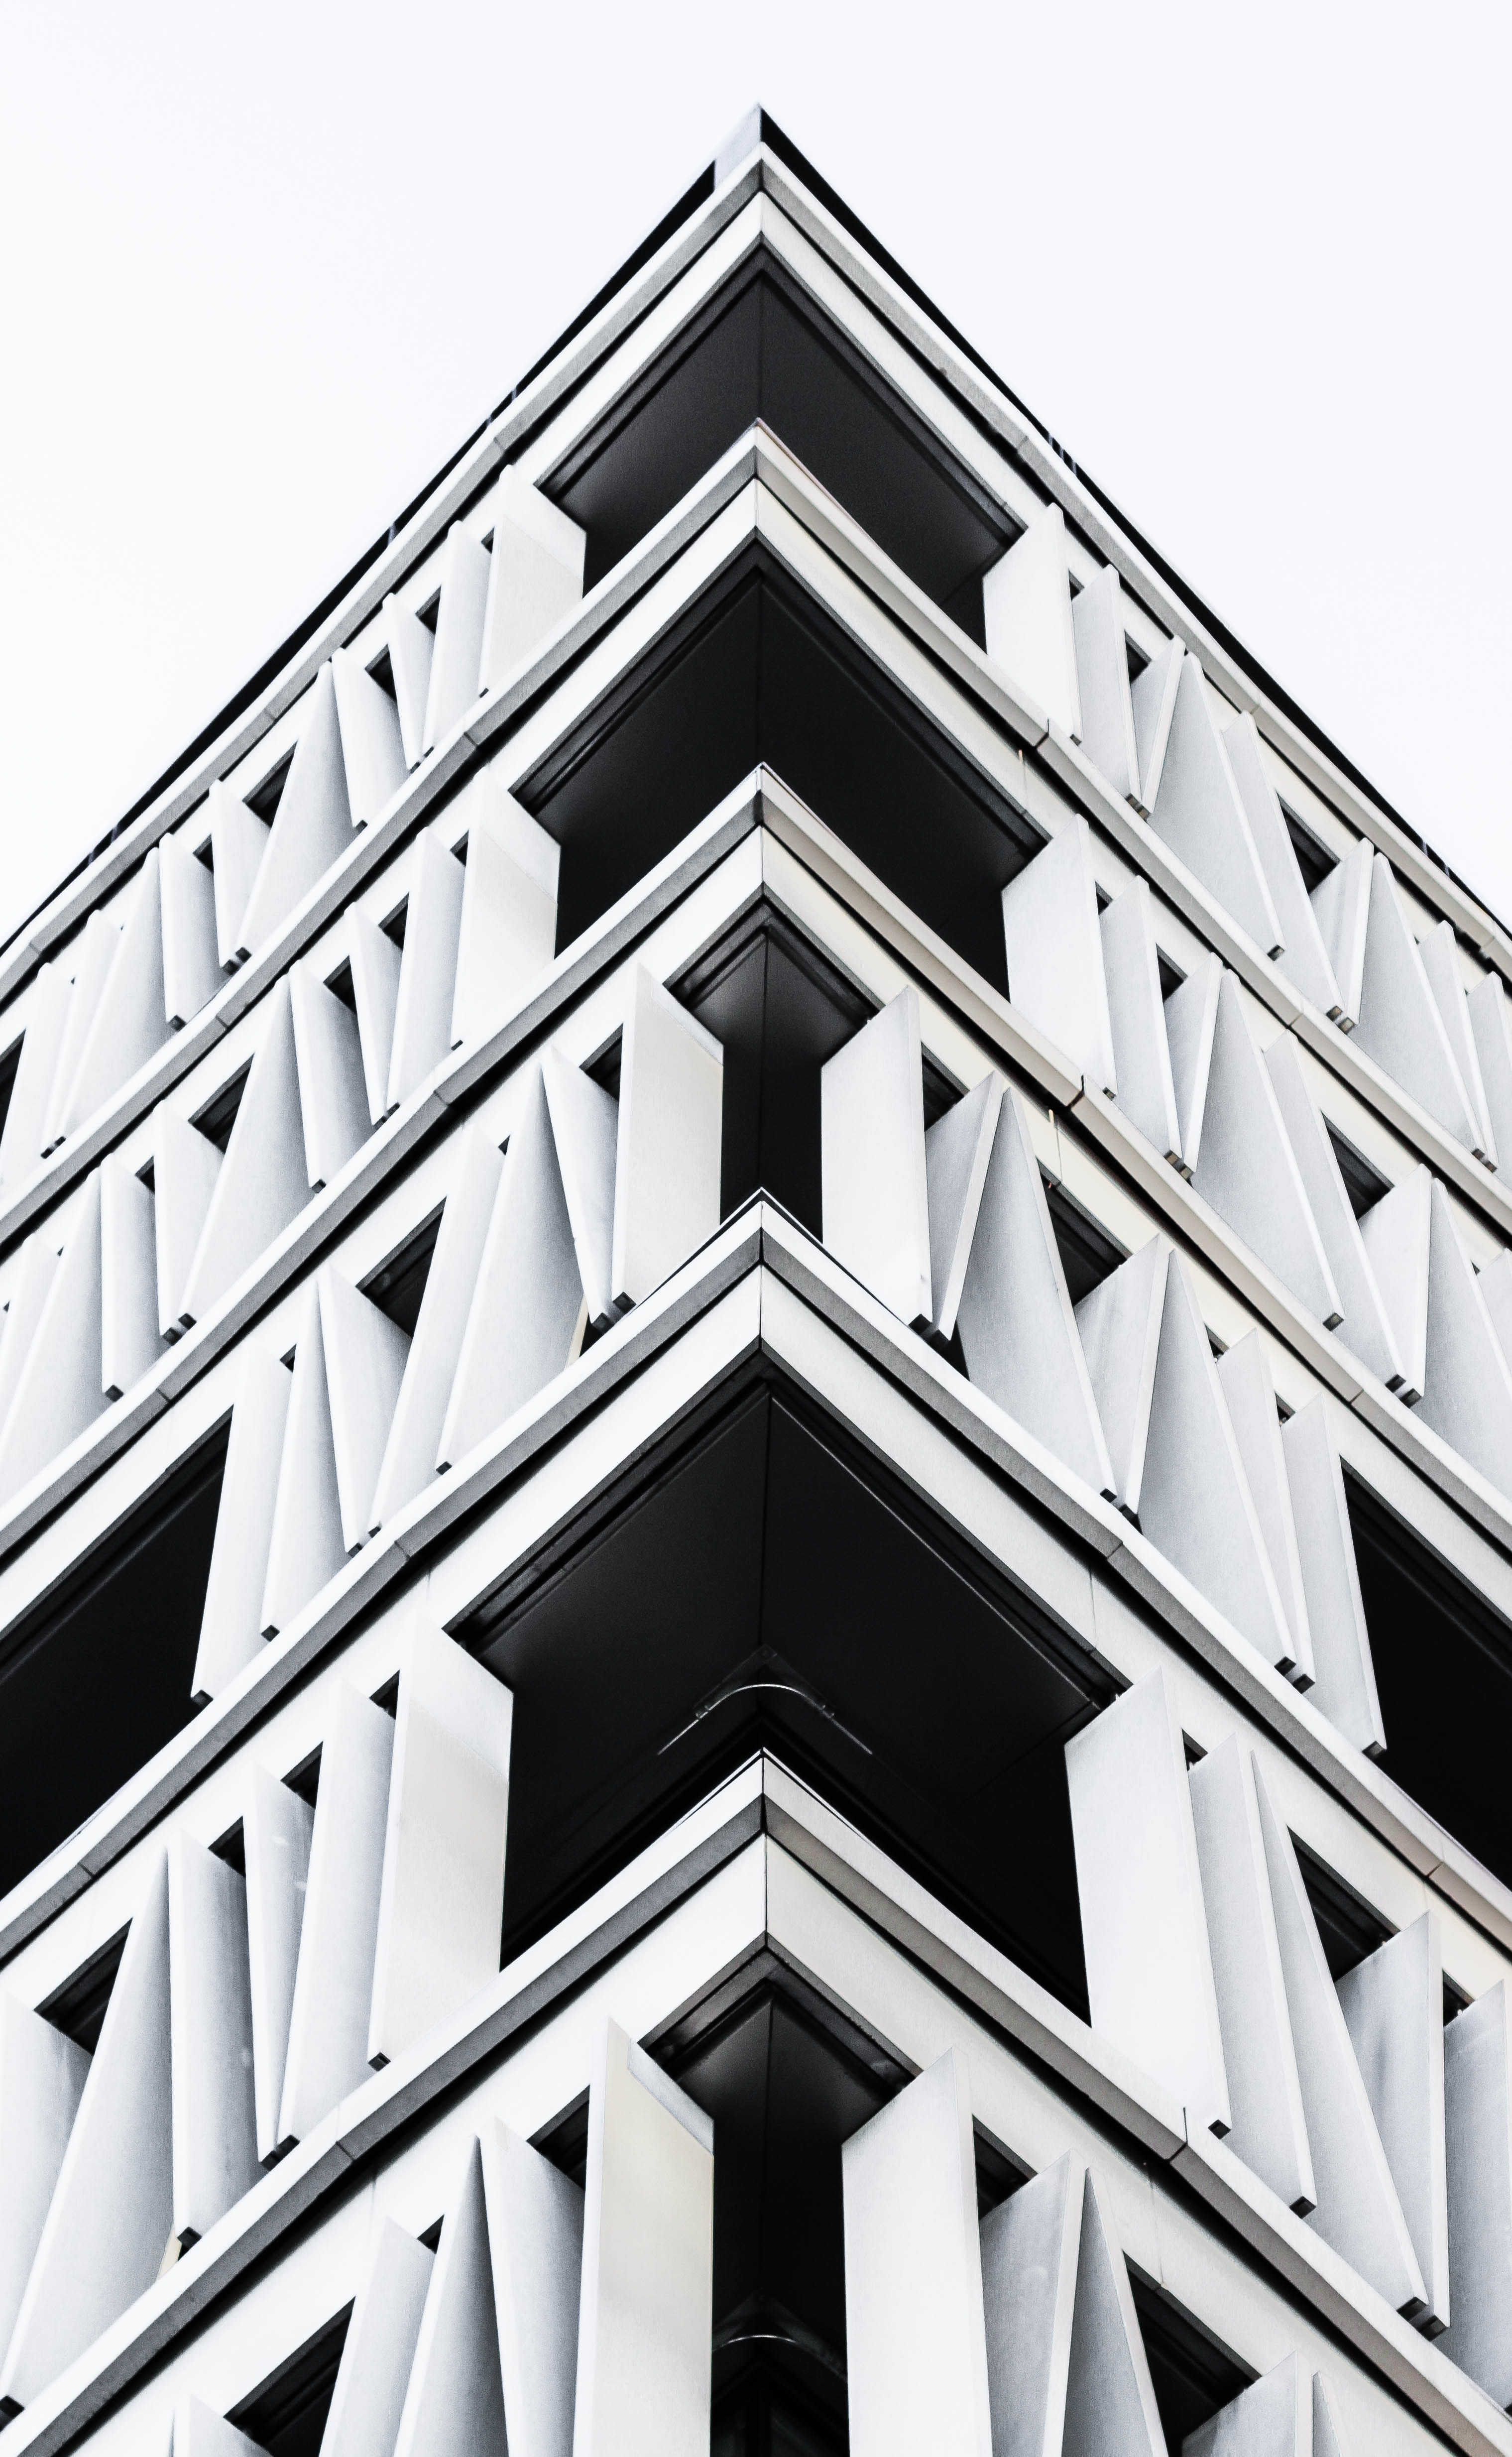 The corner of a building with a modern white and black facade